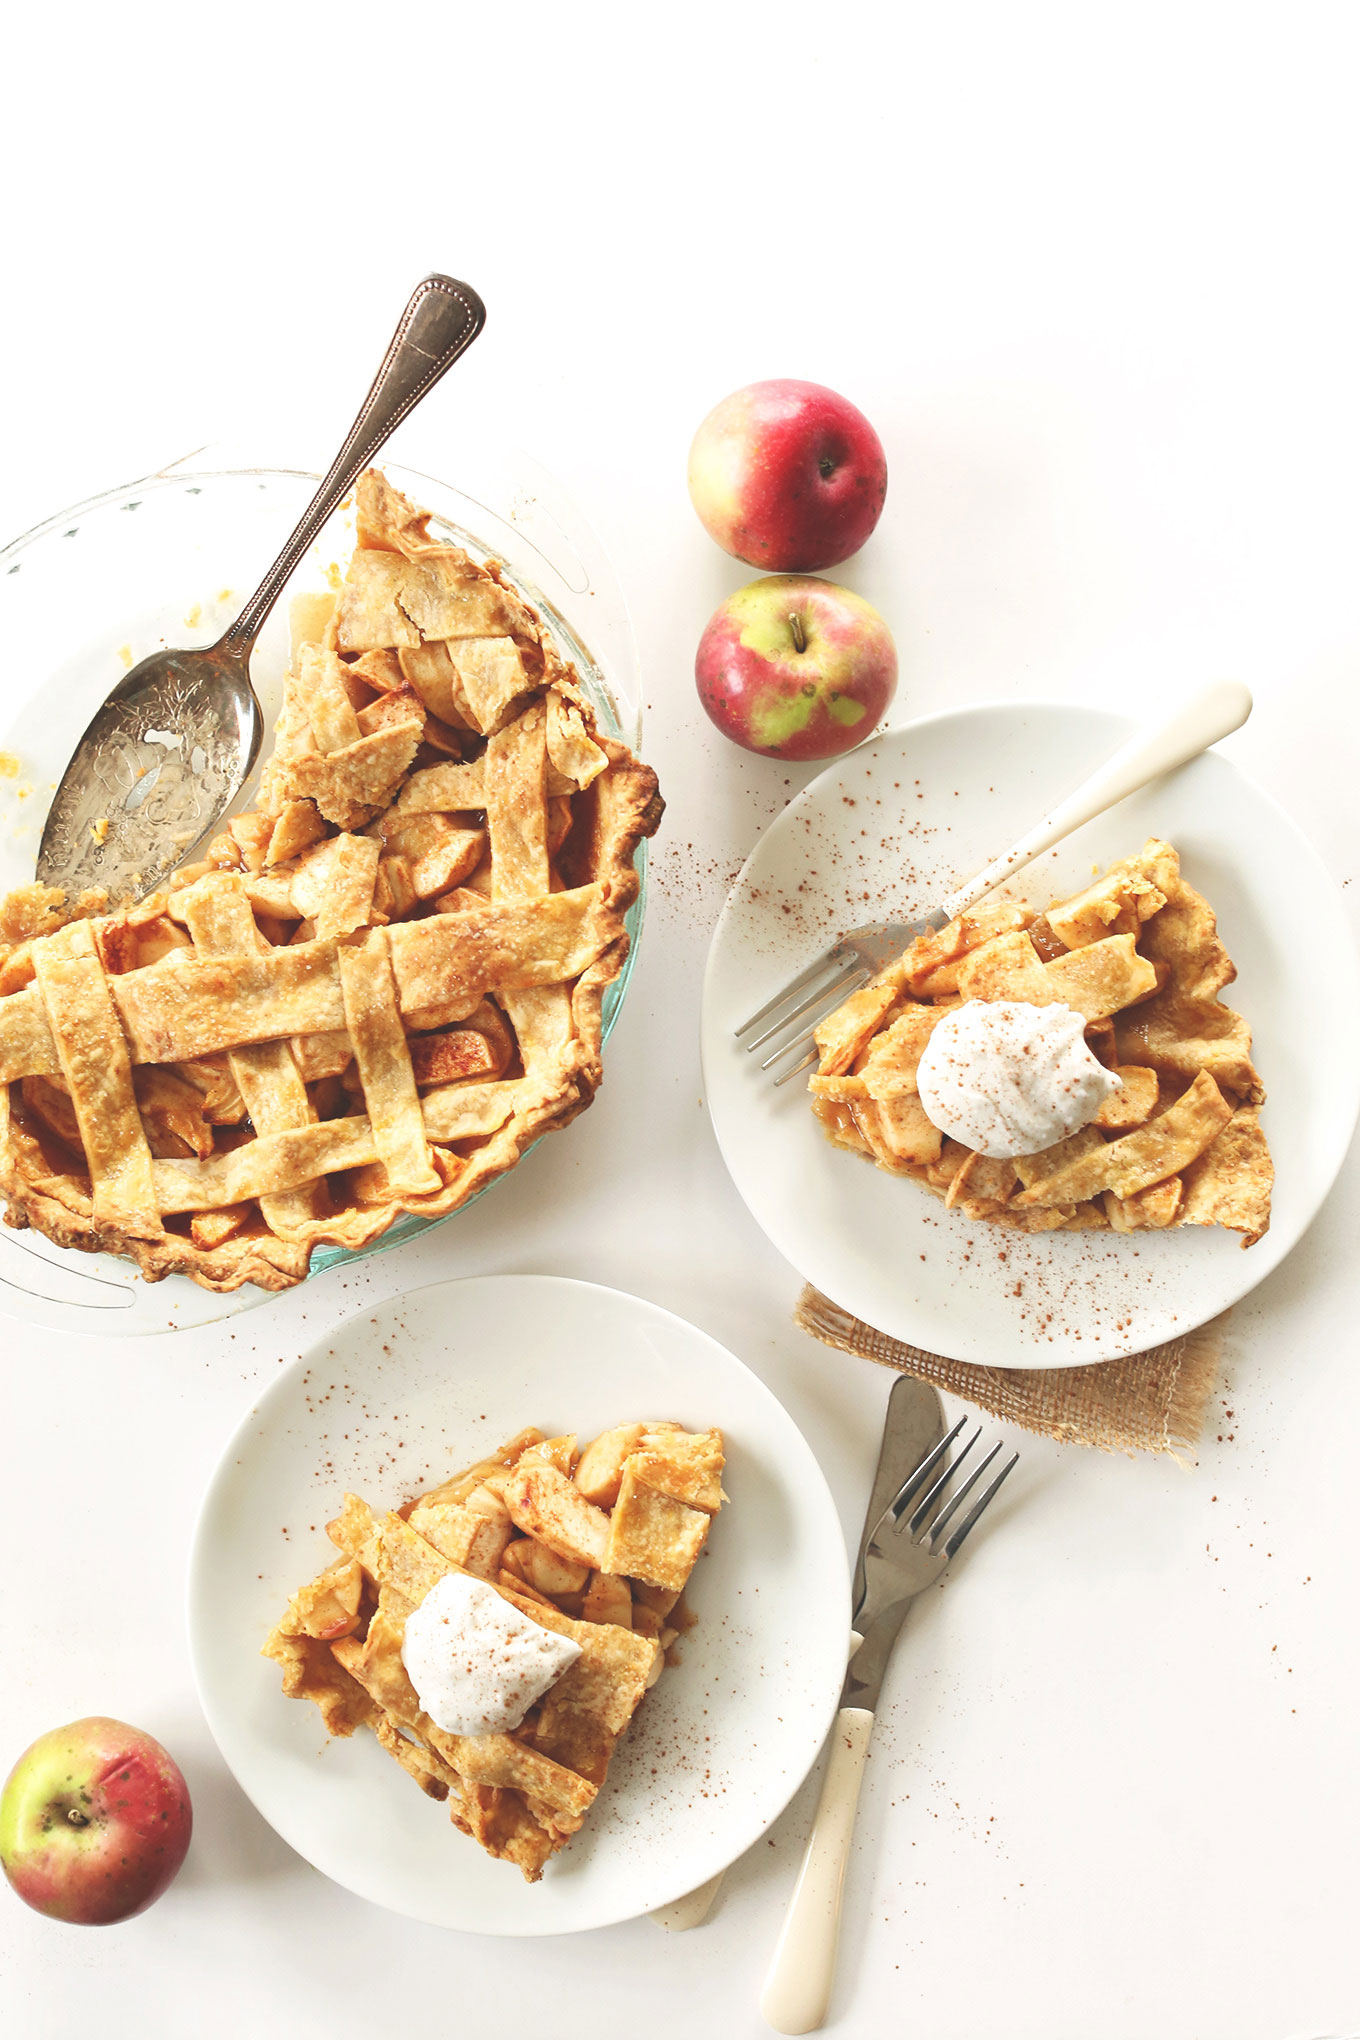 Slices of vegan apple pie with coconut whipped cream resting alongside the rest of the pie